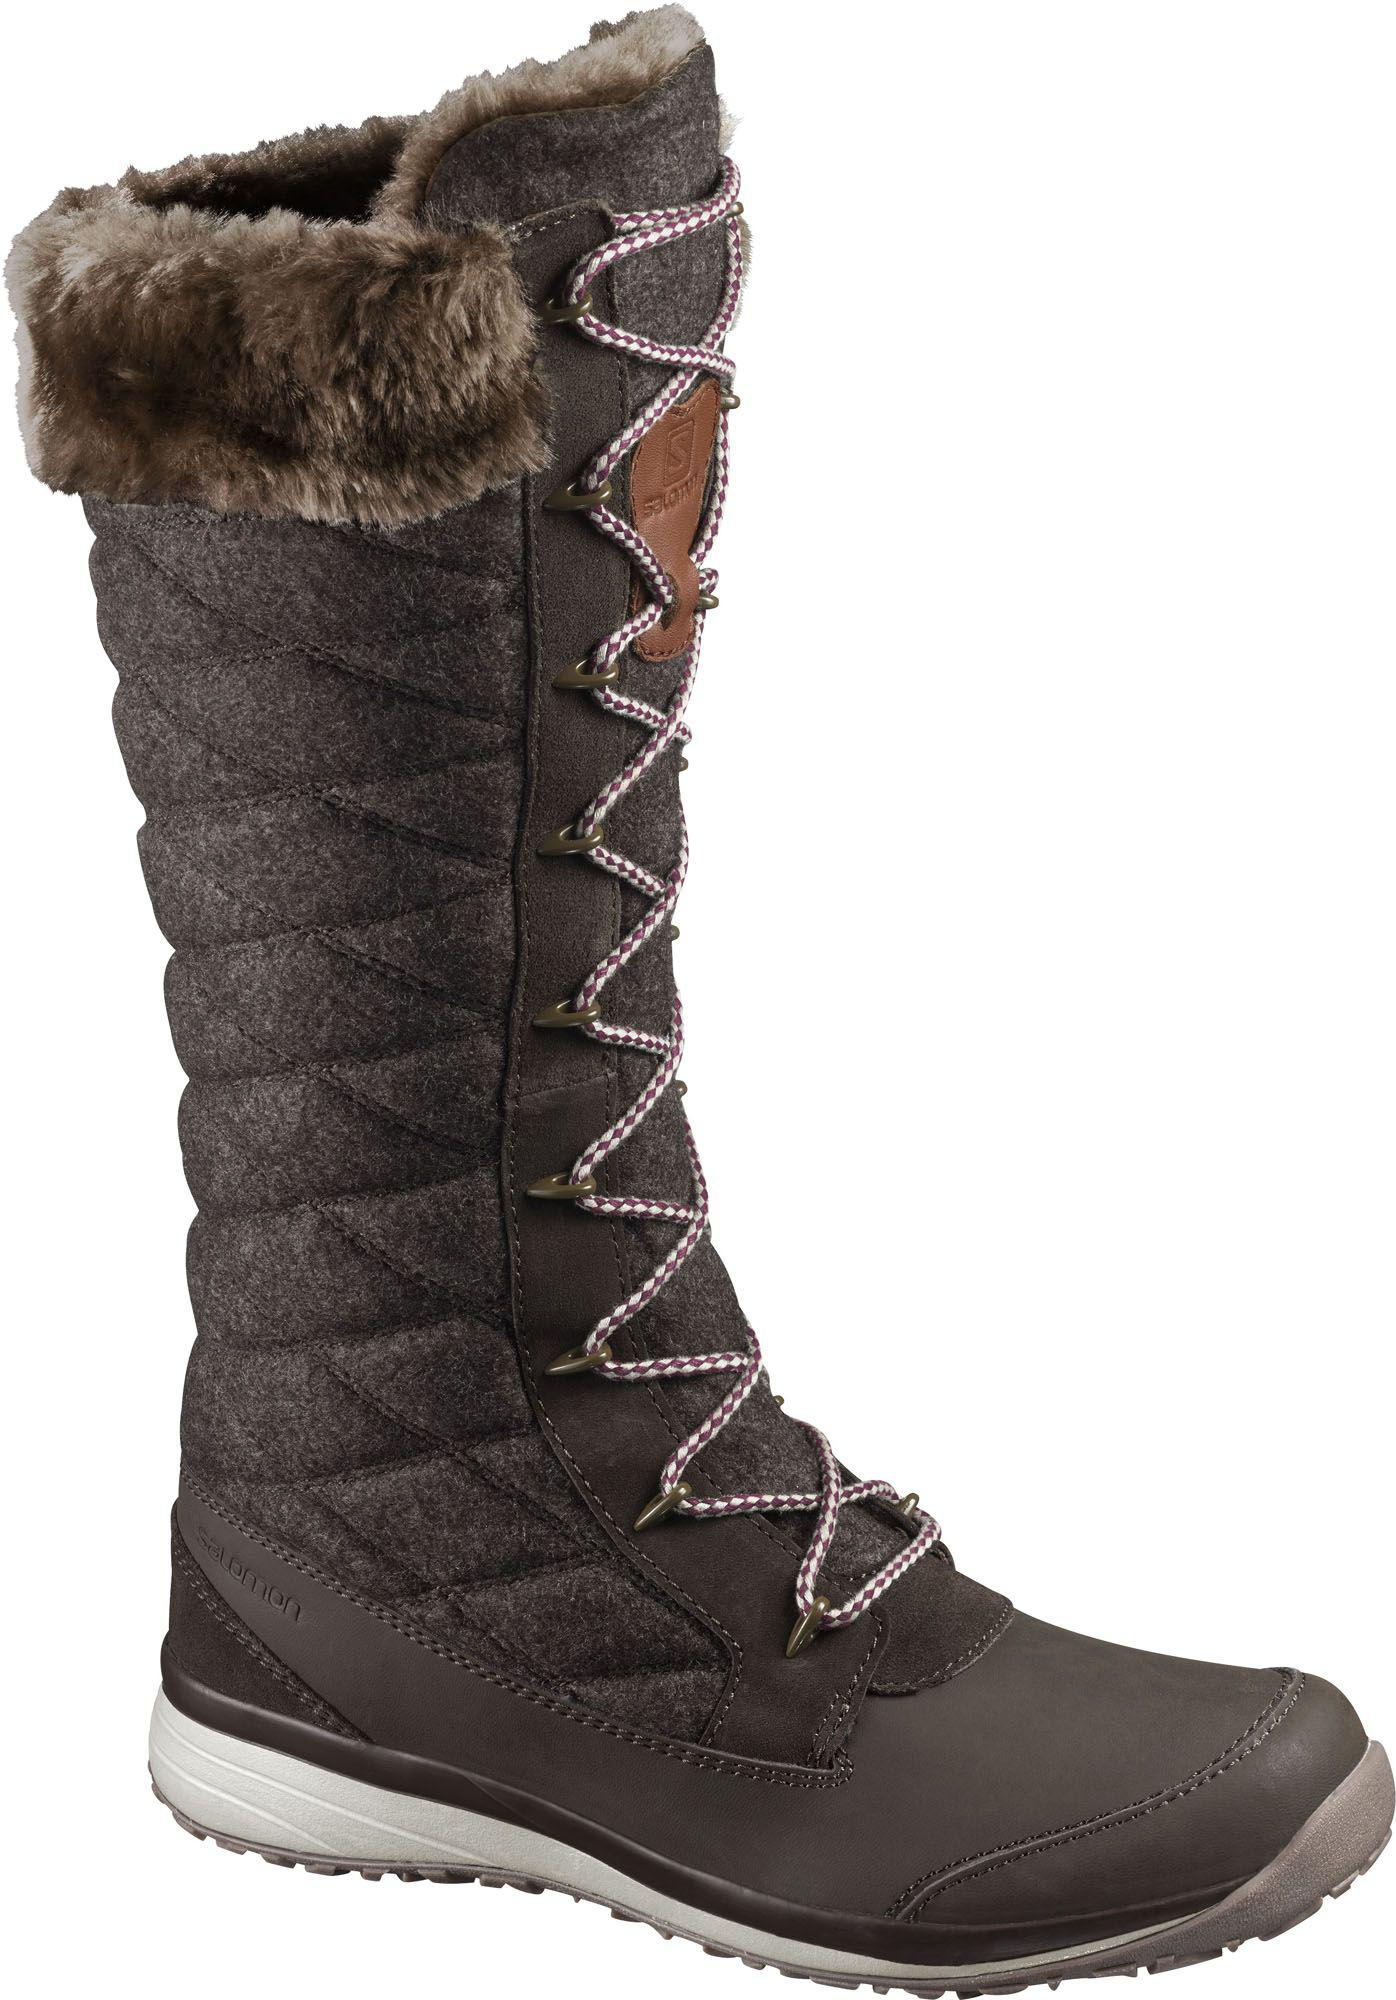 lowest discount save up to 80% biggest discount Yves Salomon Hime High Winter Boots in Brown - Lyst